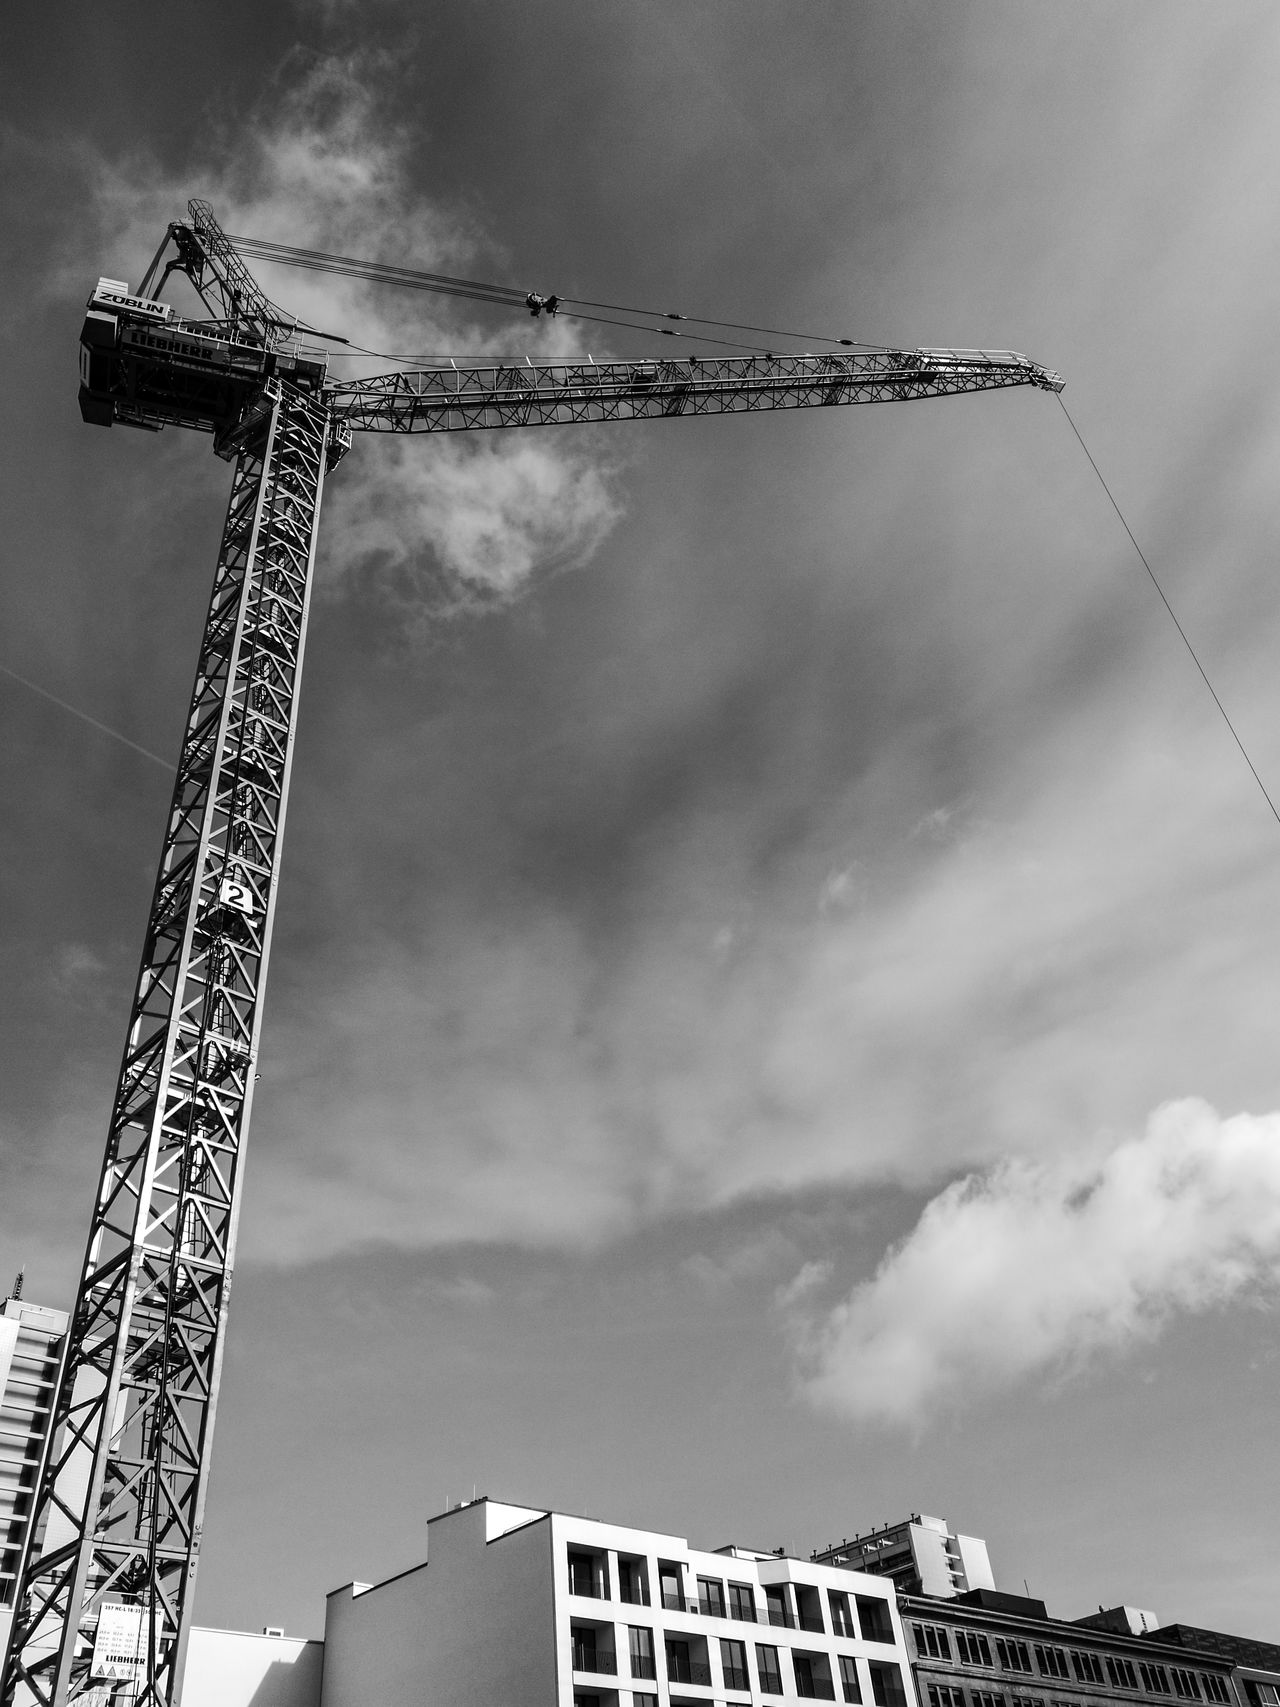 Architecture Built Structure Cloud - Sky Construction Construction Site Crane Crane - Construction Machinery Day Development Improvement Industrial Equipment Low Angle View No People Outdoors Sky